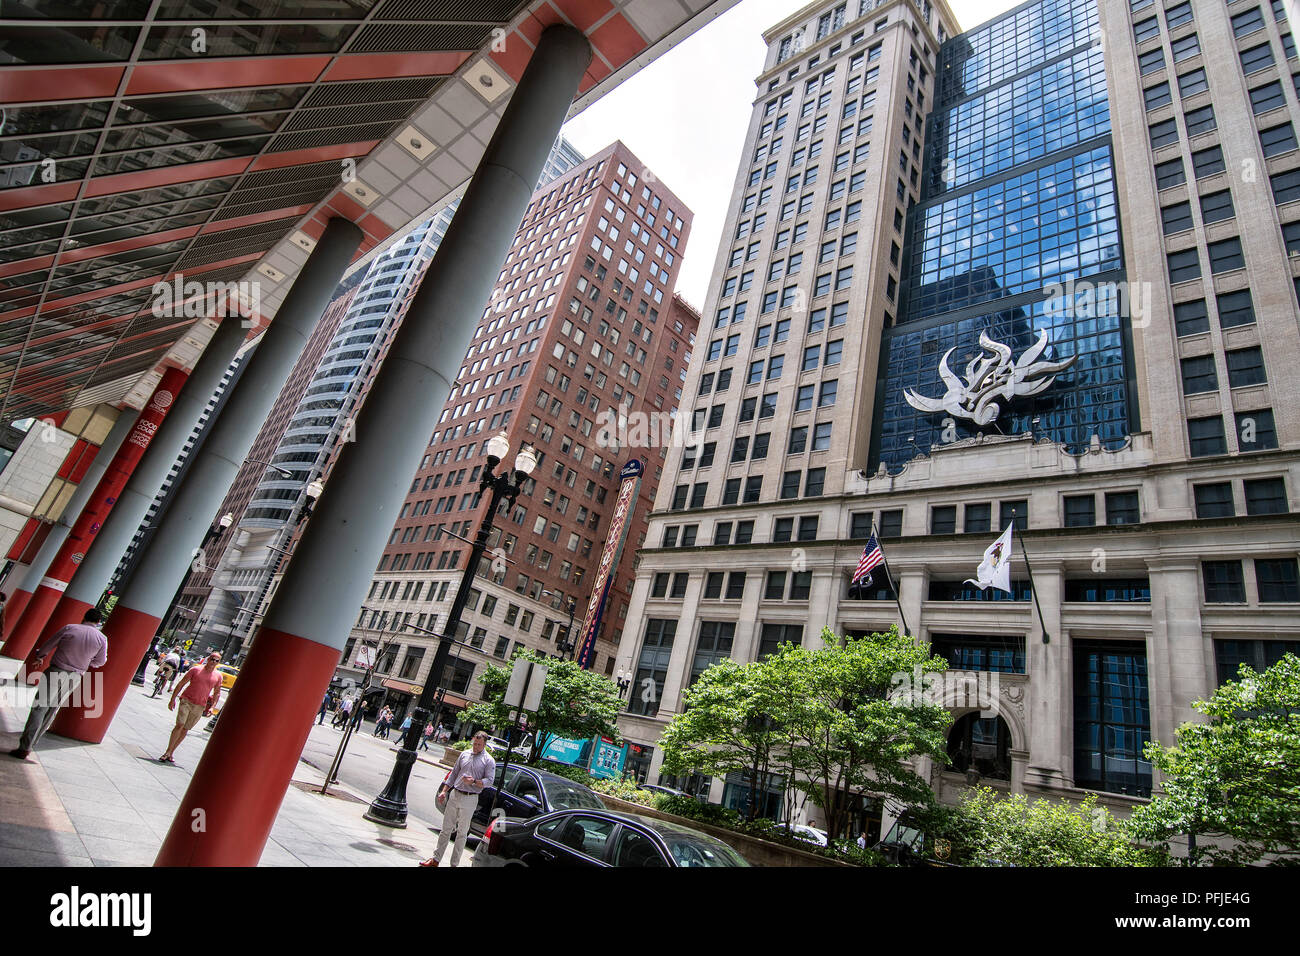 llinois Department of Labor, Downtown Chicago, North LaSalle Blvd, Cadillac Palace Theatre. - Stock Image